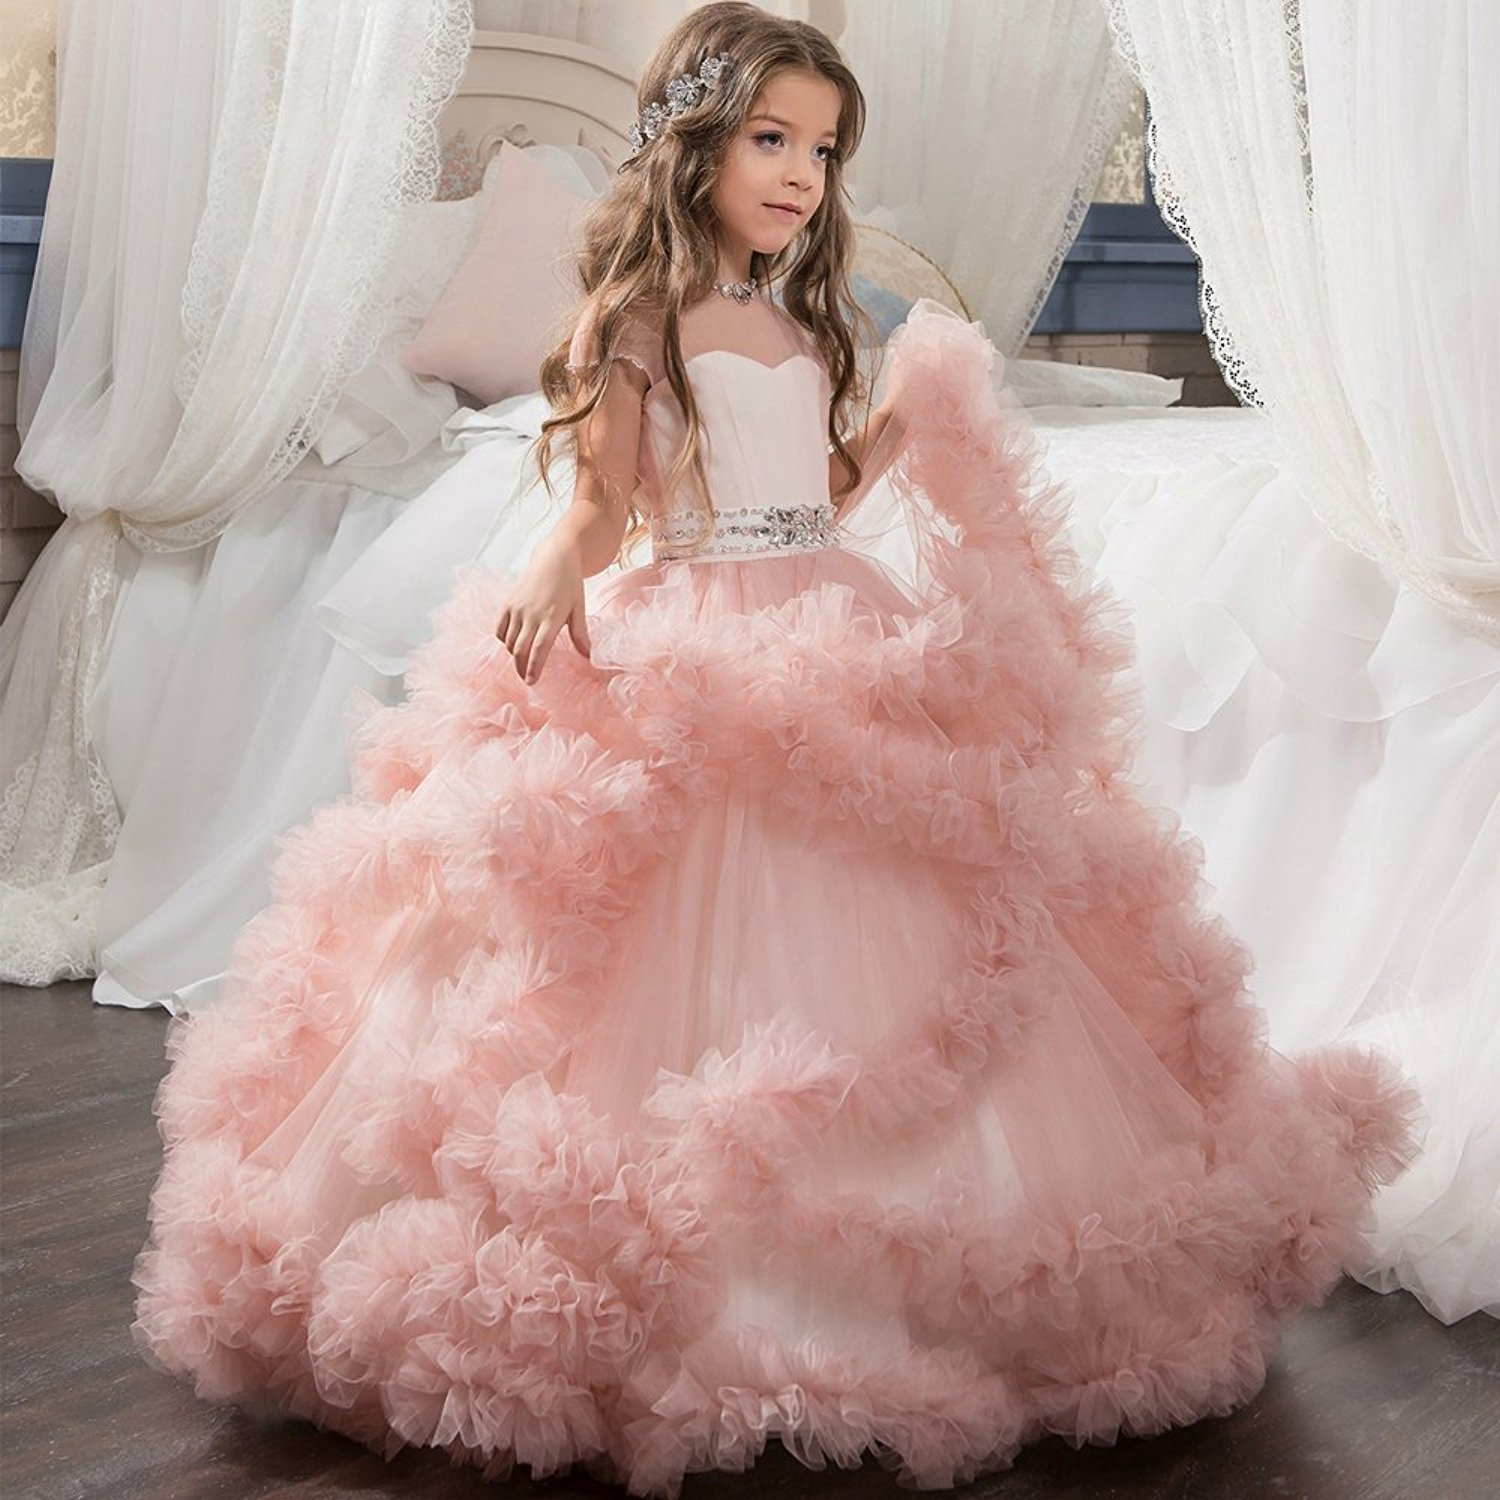 ABYABYGO Luxury Princess Christmas and New Year Party Dresses Baby Kids Ball Gown Birthday Gift Children Toddler Dress for Girls baby kids girl dress toddler princess party ball gown dress for girls clothes children princess dresses birthday wedding gown